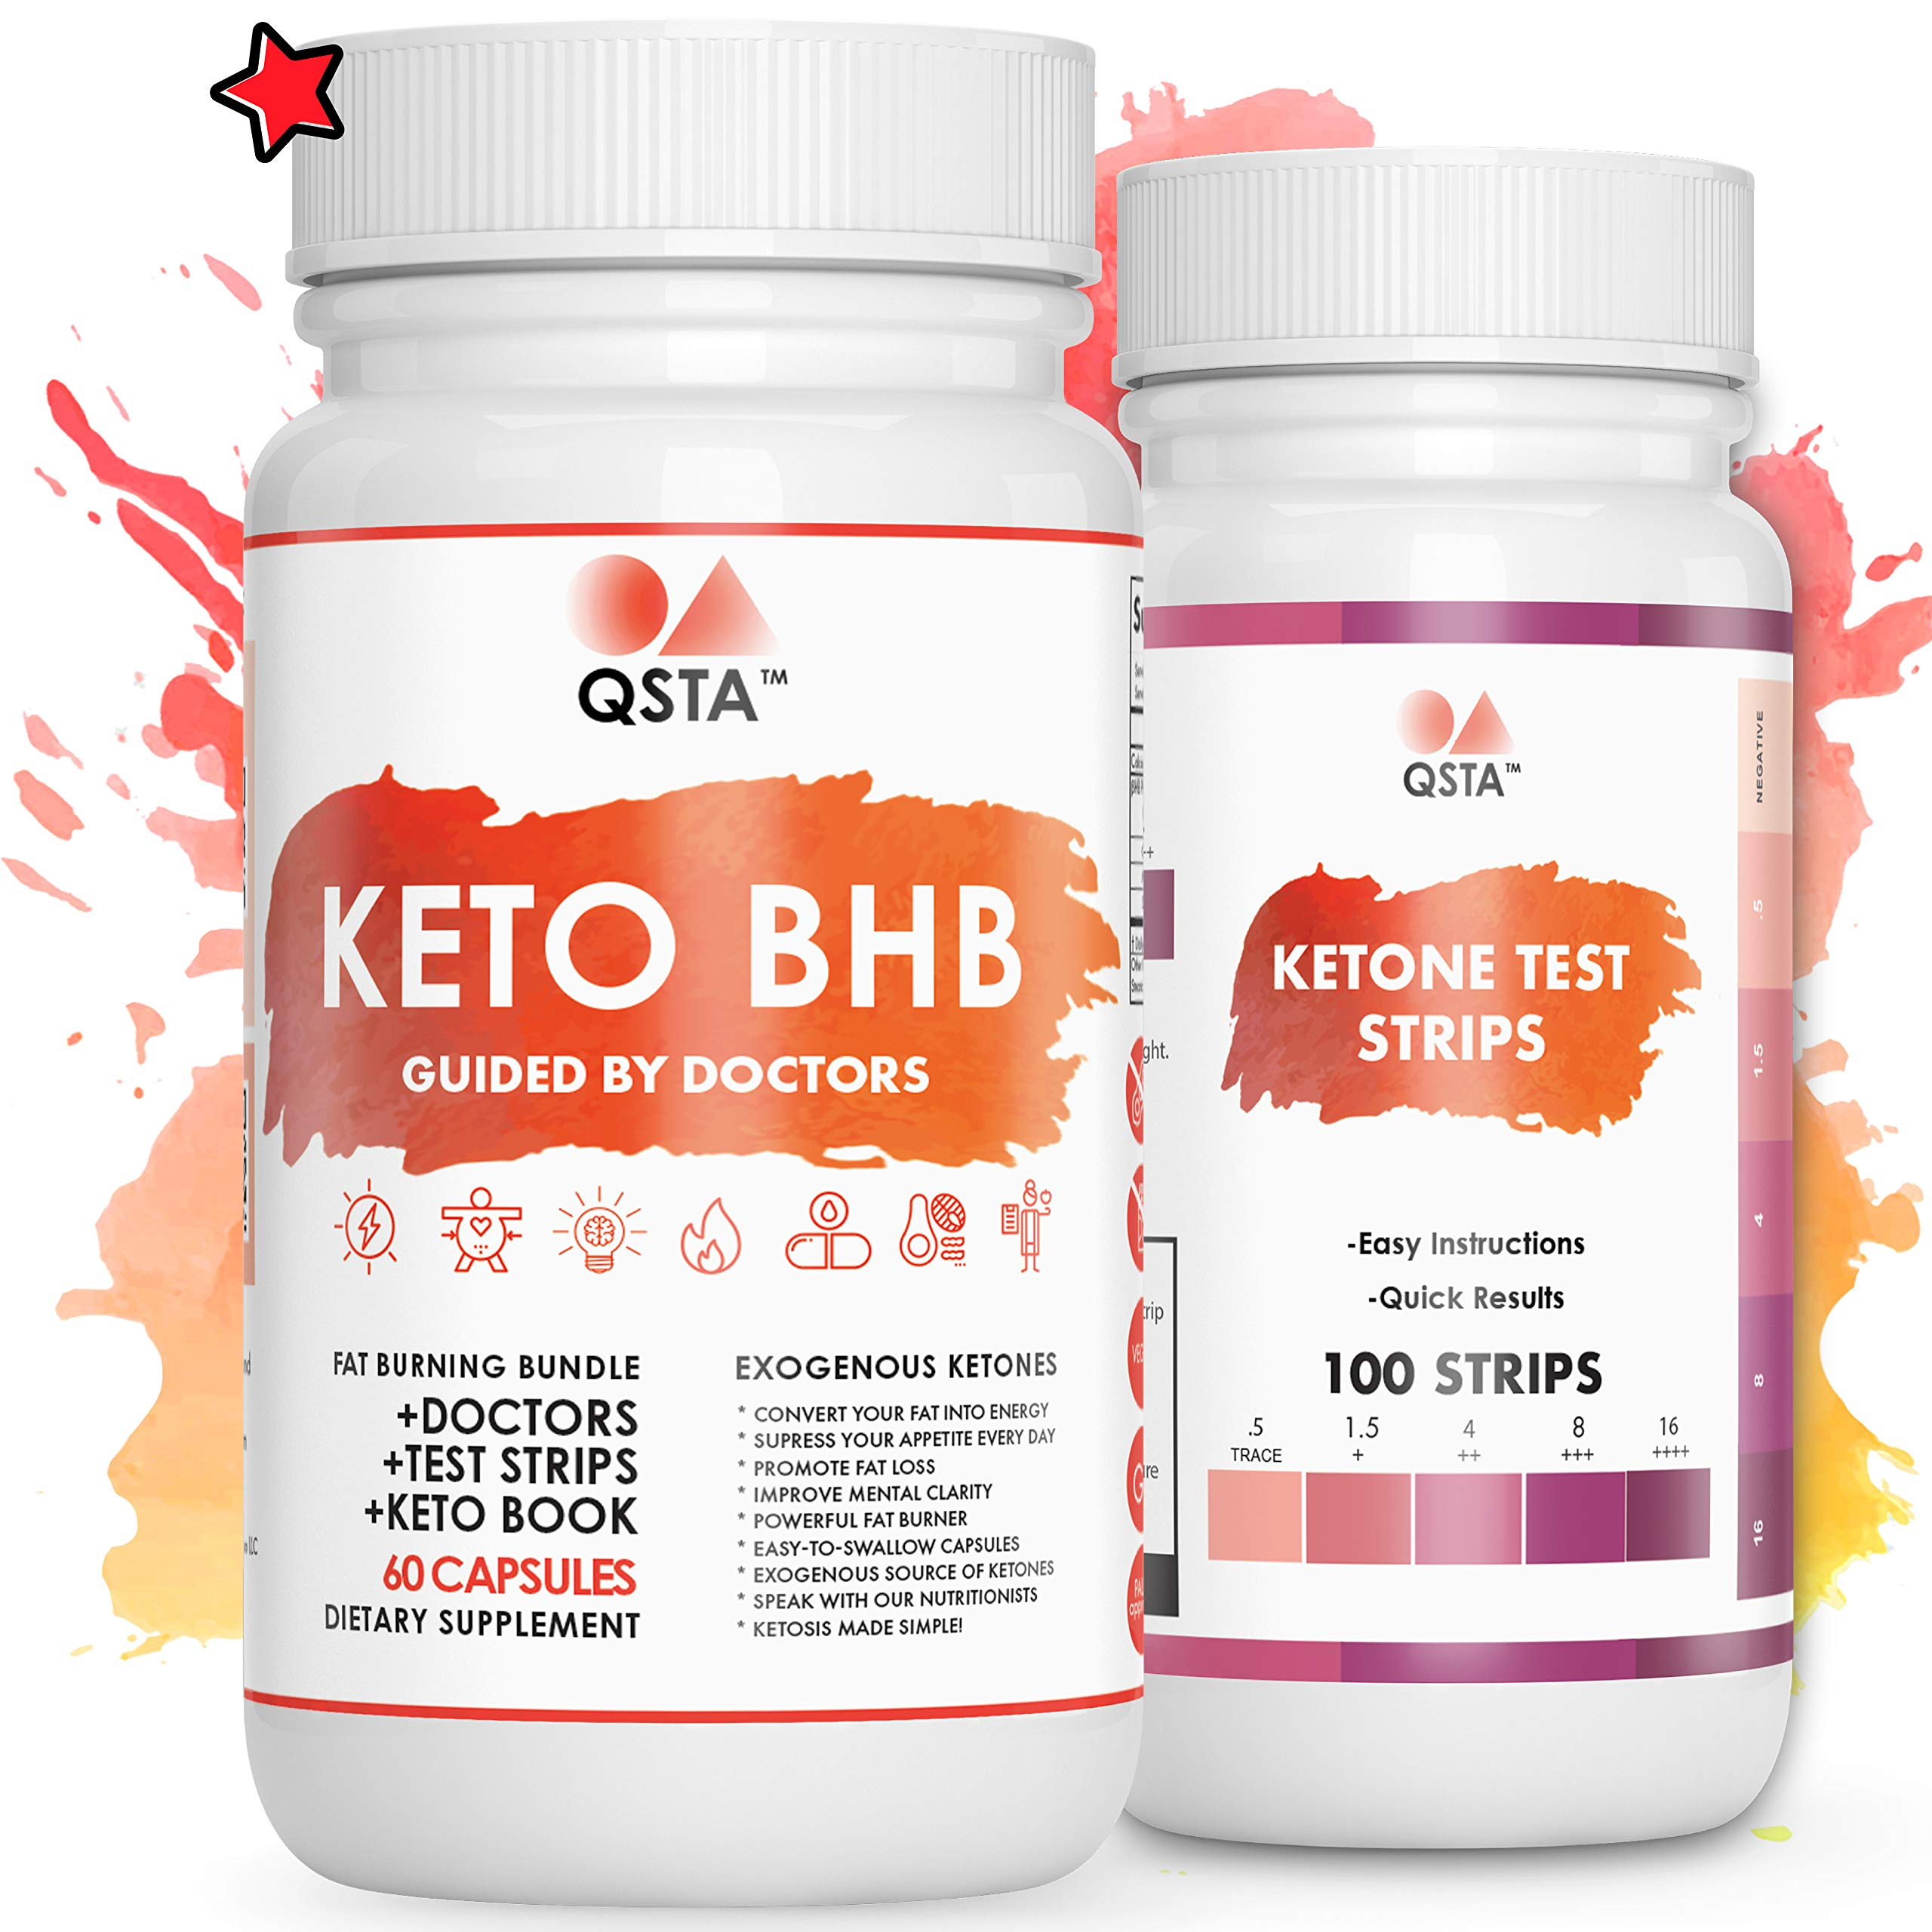 Keto BHB Pills + Test Strips Bundle | Pure Keto Diet Pills + Test Strips + Advanced Weight Loss eBook + Real Time Doctors | Shark Tank Evolution | Ketones Supplements | Made in USA | 975MG +Doctors